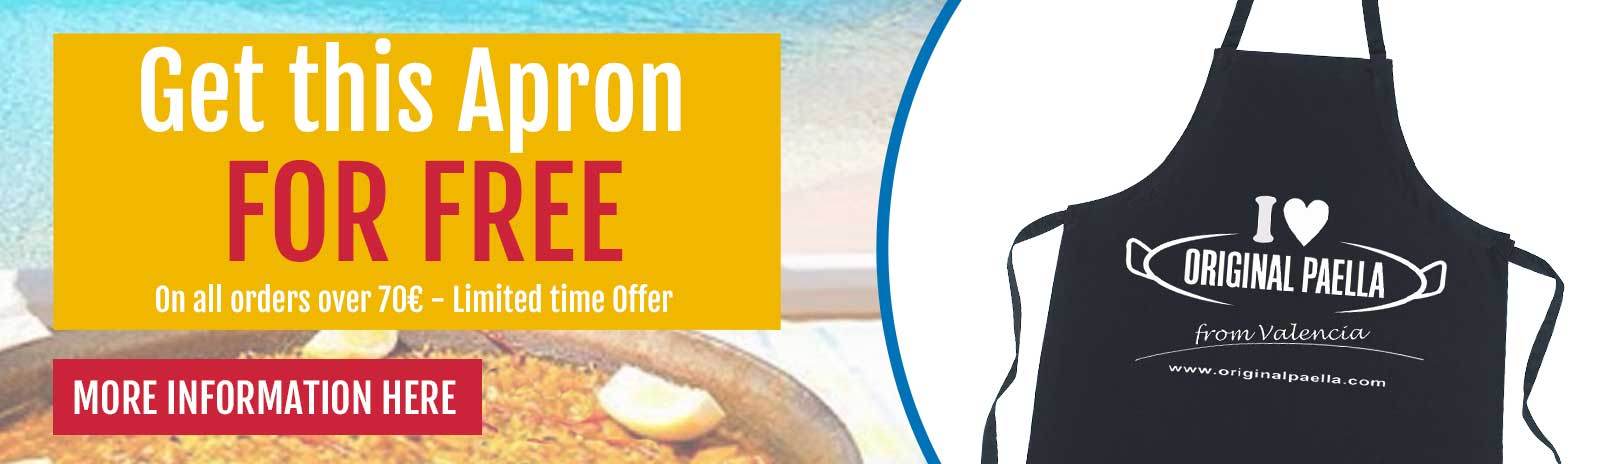 apron-original-paella-from-valencia-for-free